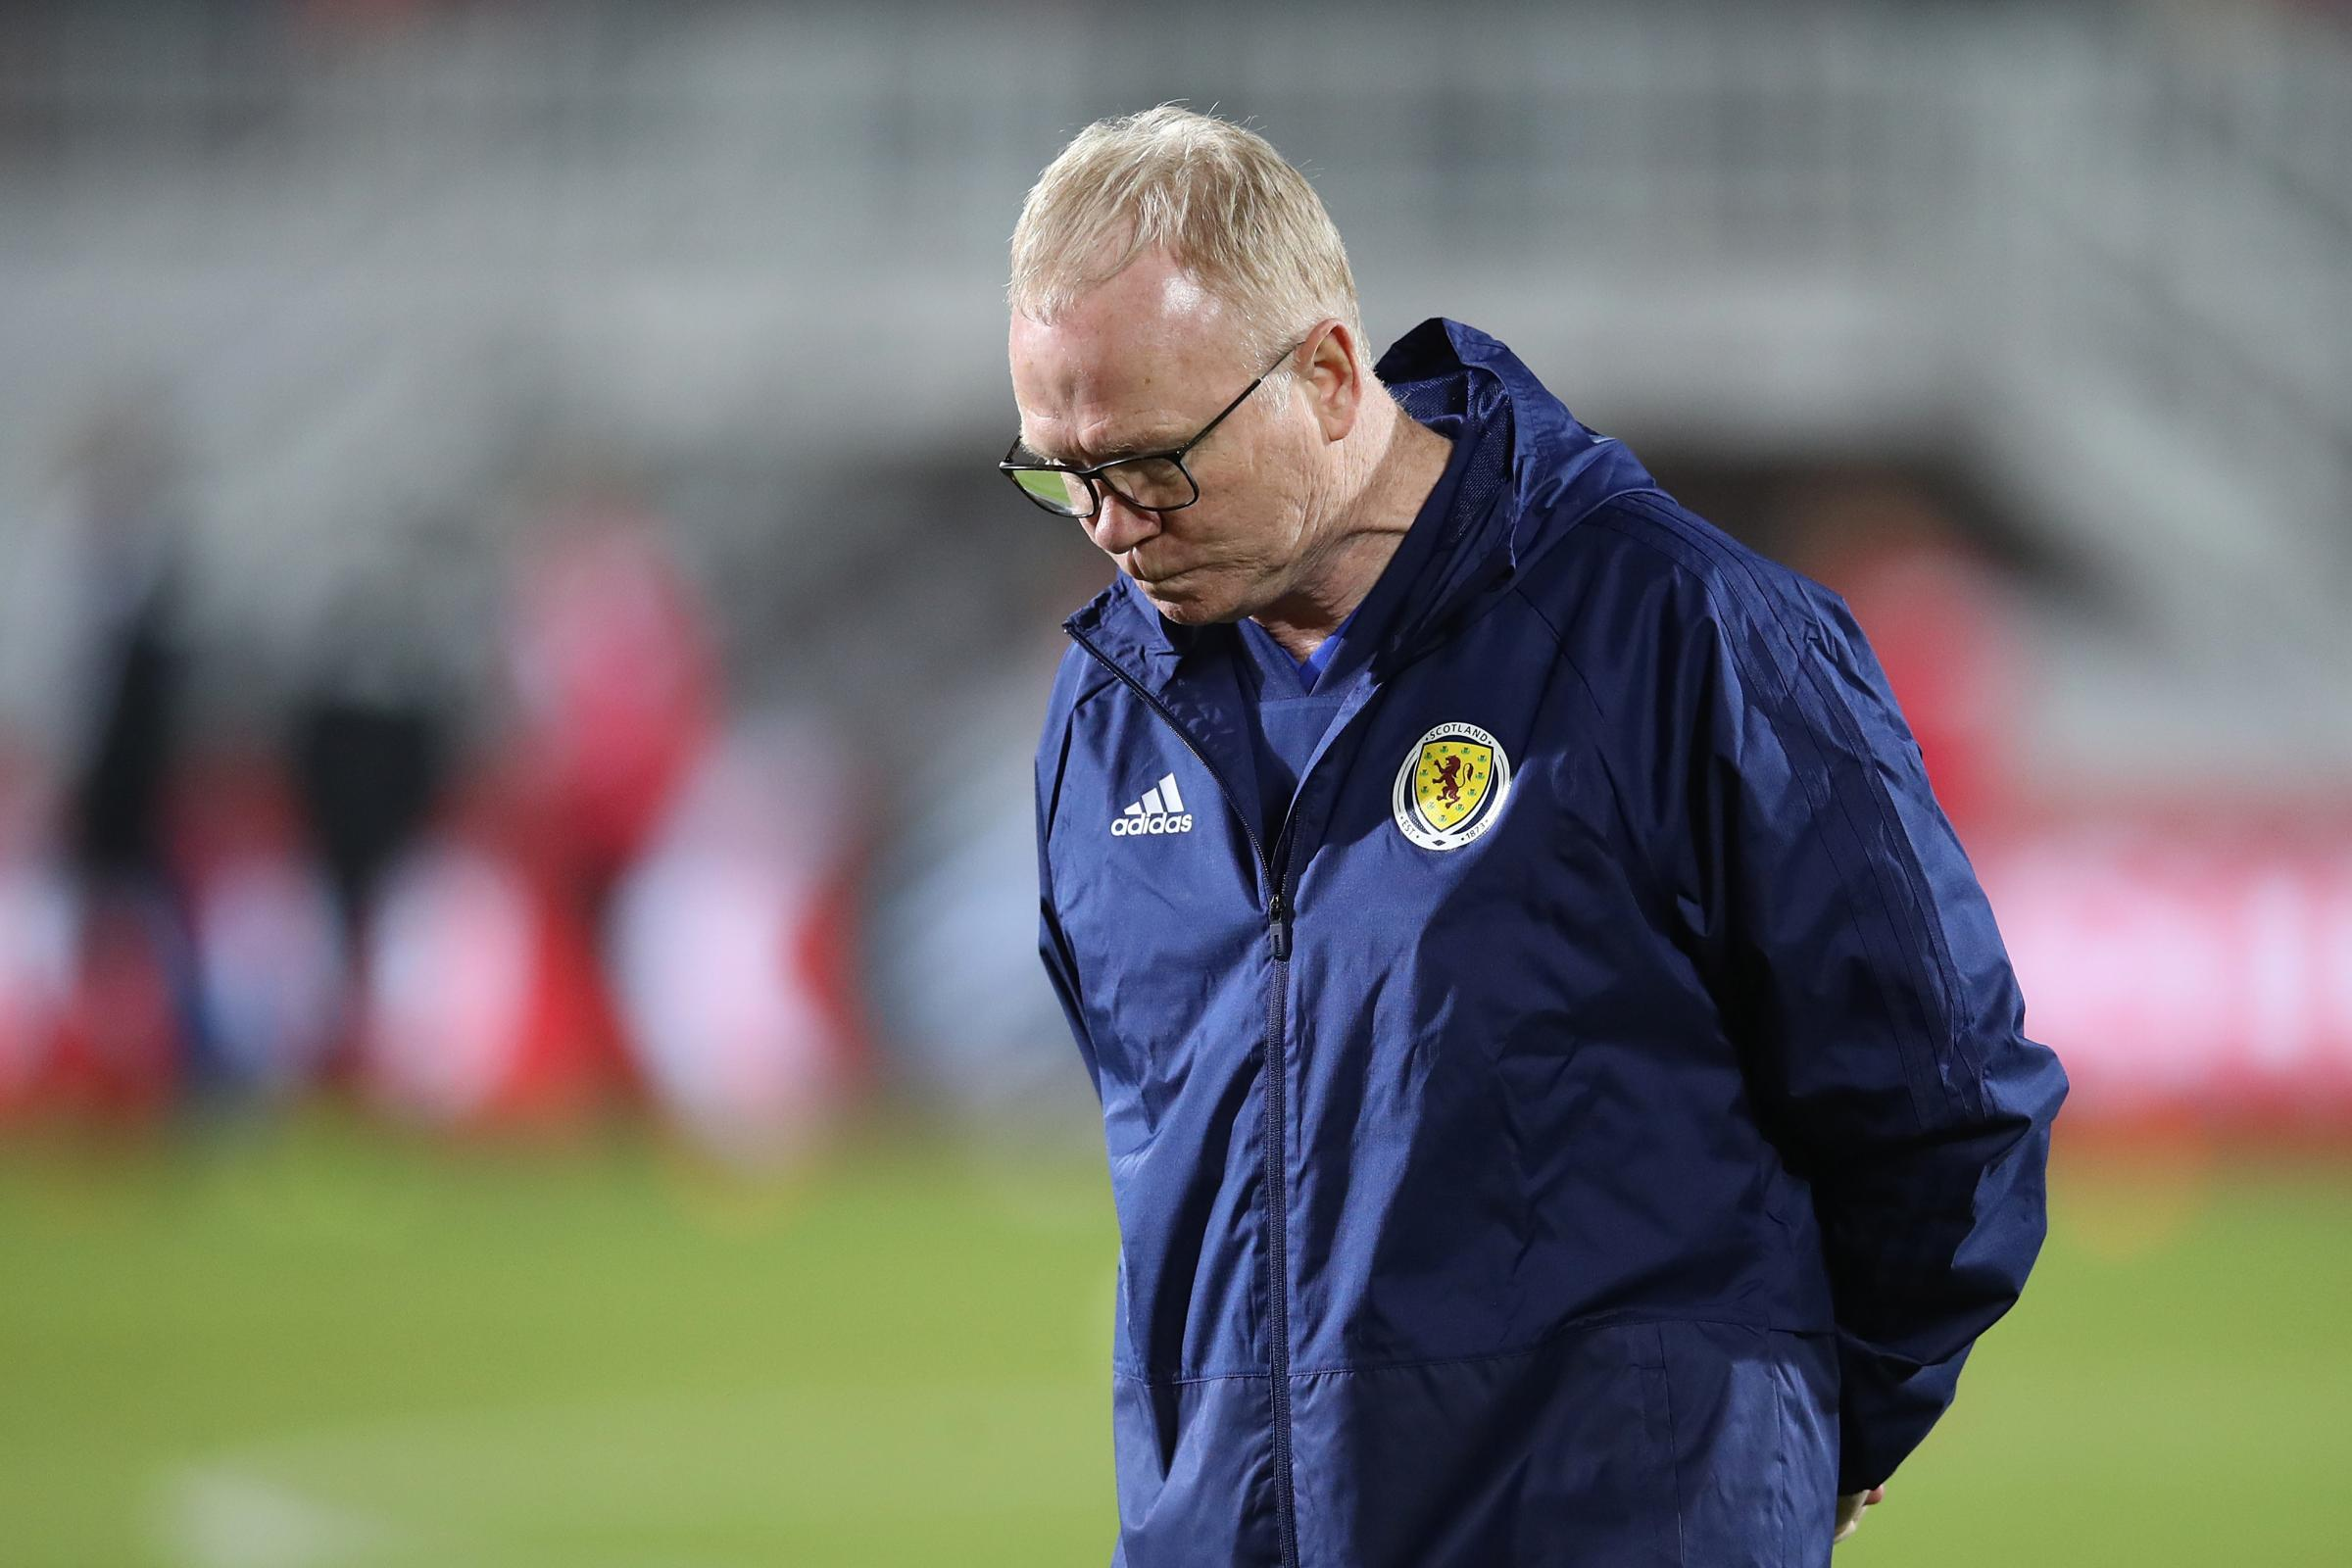 Alex McLeish is no longer the Scotland boss